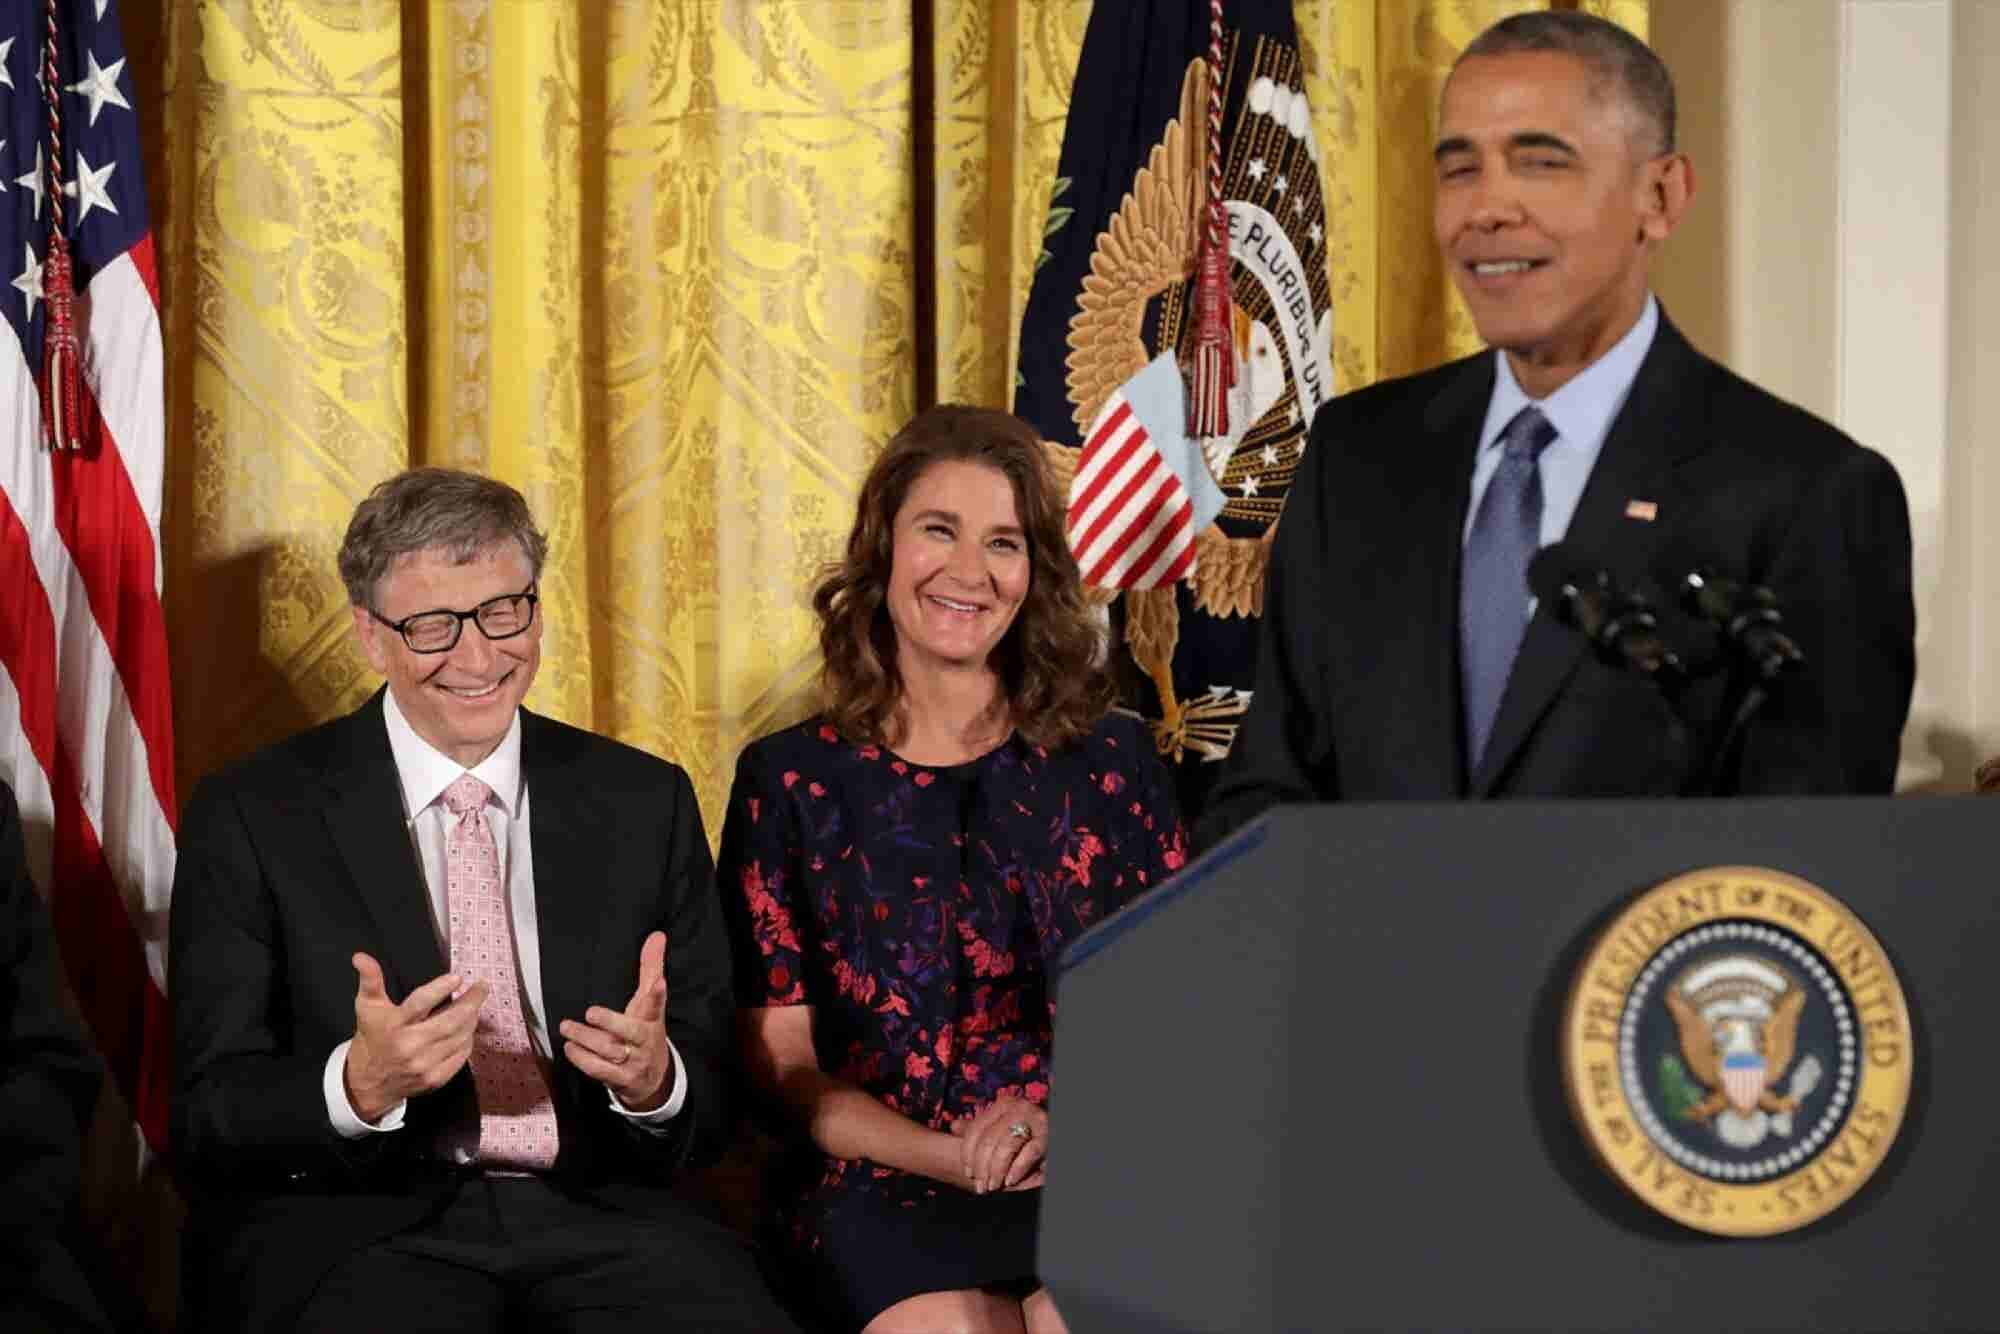 Obama Pokes Fun at Bill Gates as He Awards Him Presidential Medal of Freedom